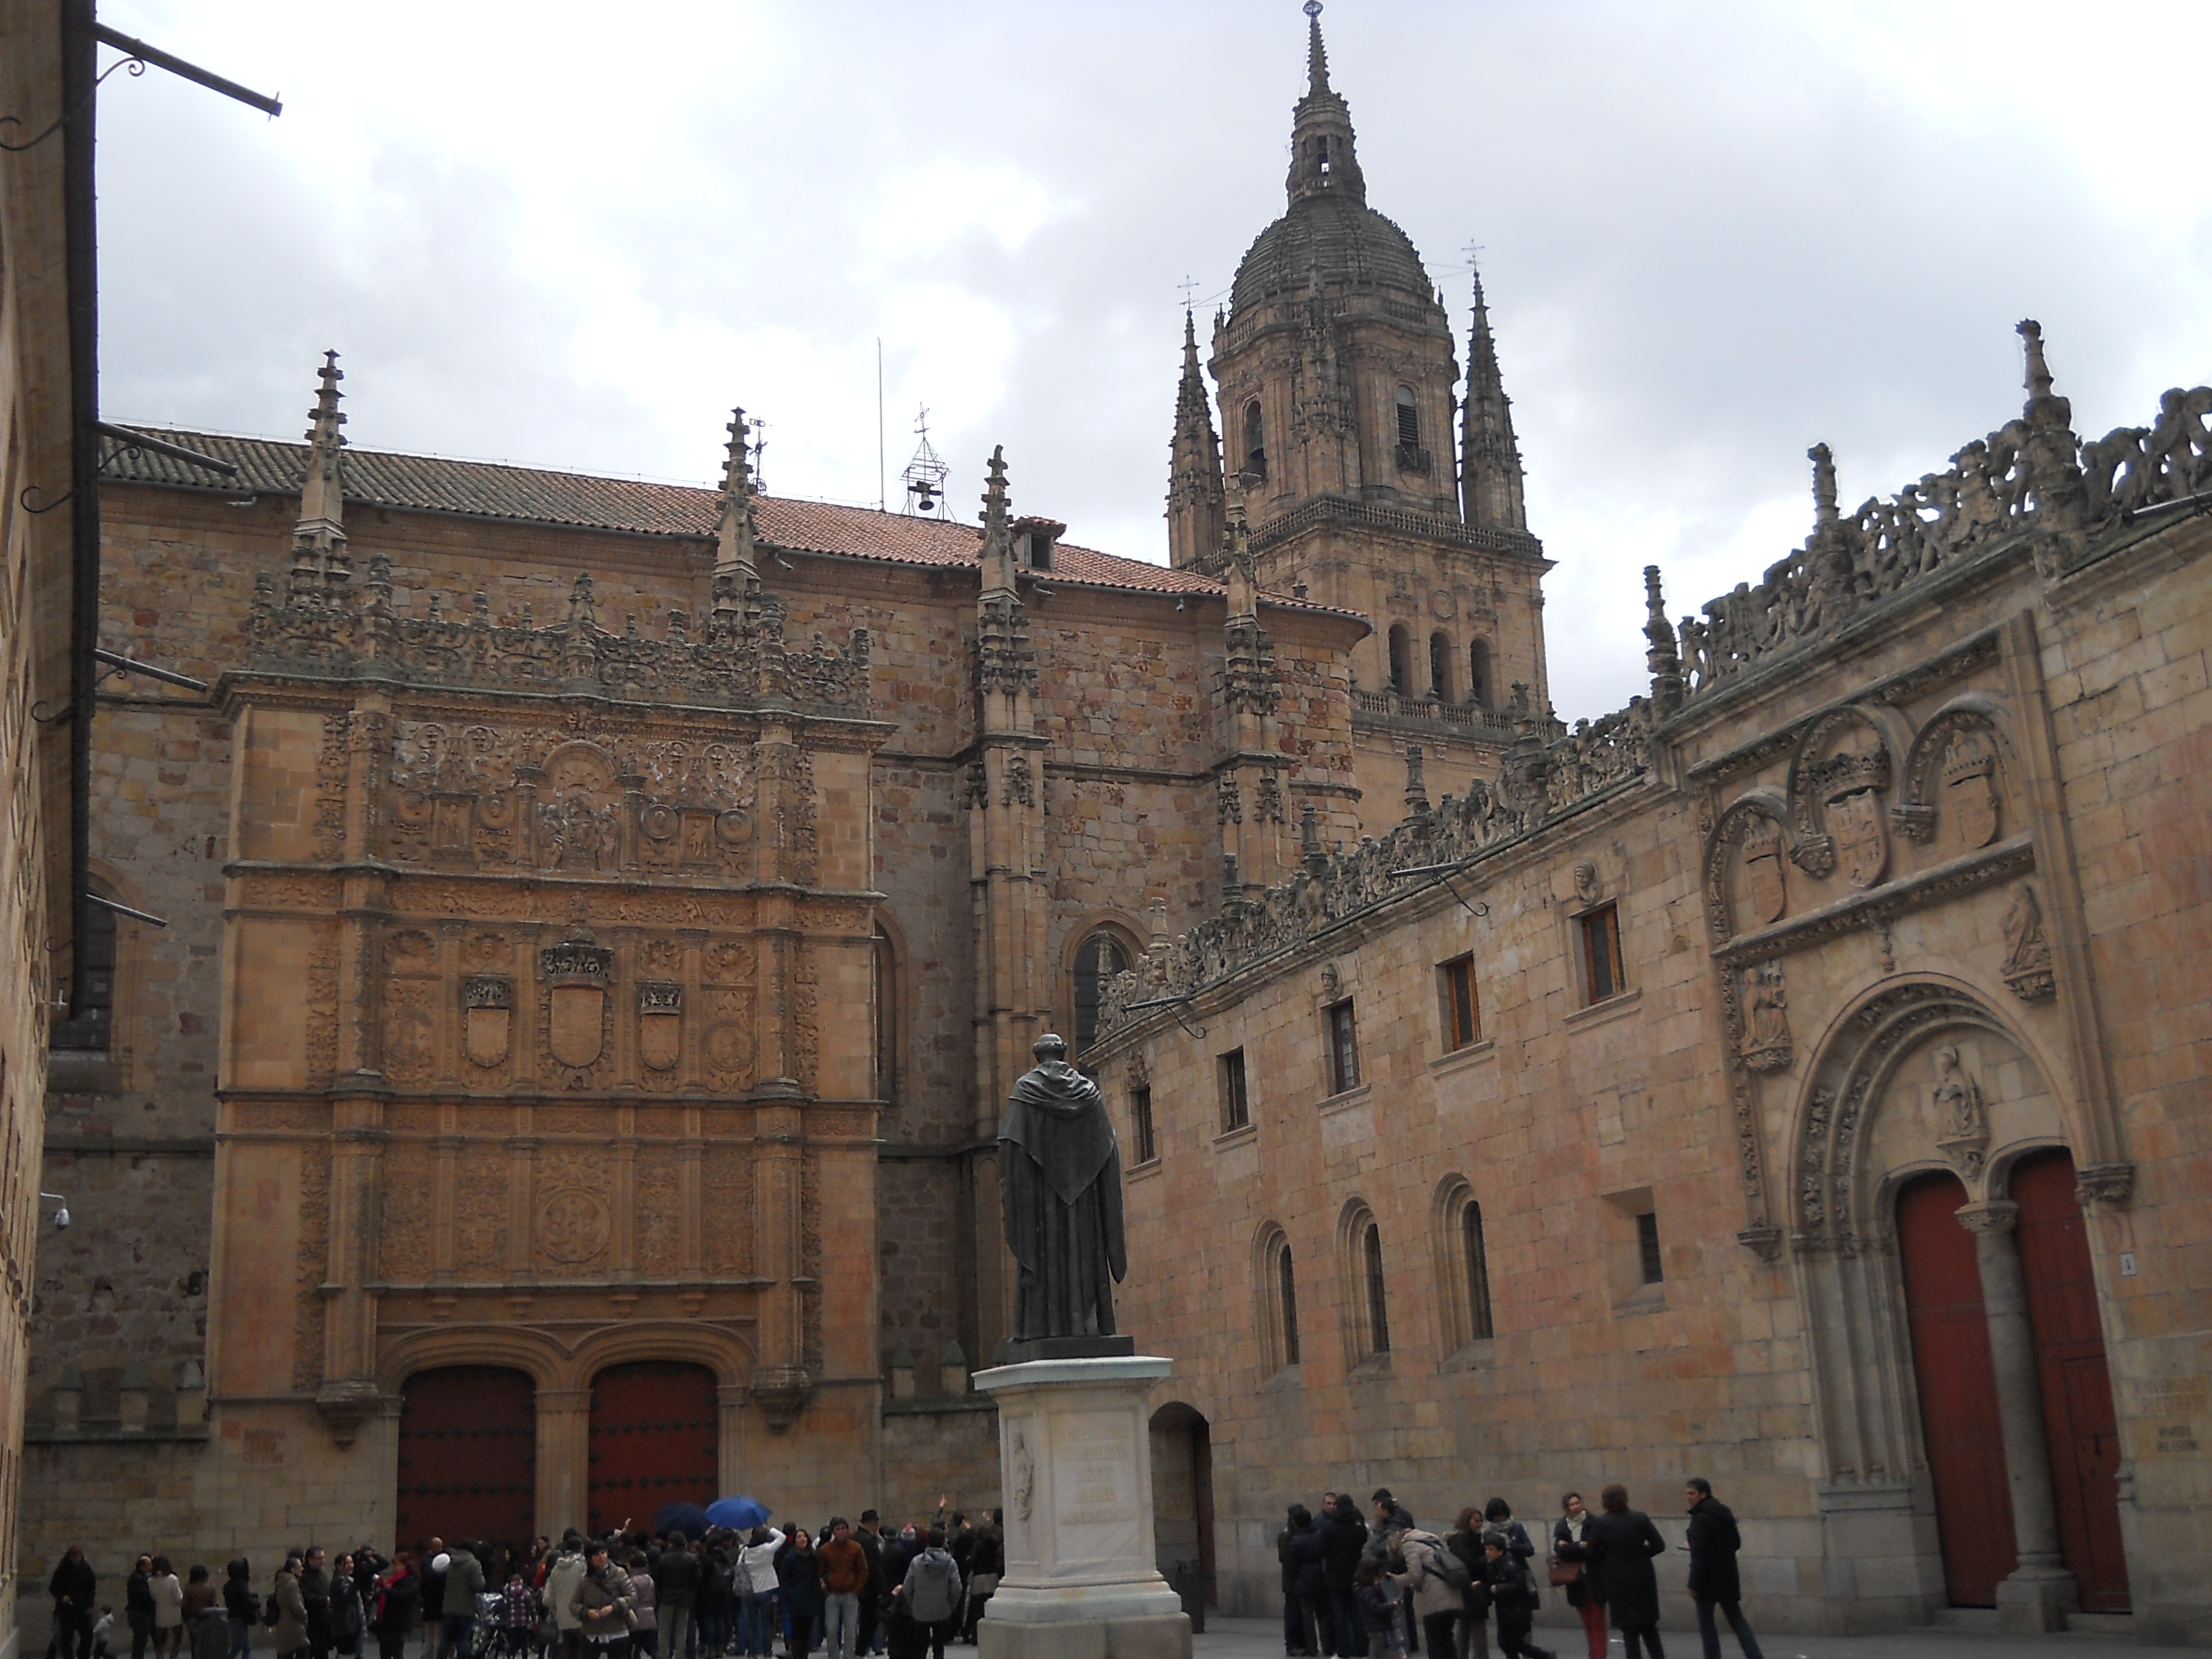 File:Salamanca universidad Patio de Escuelas.jpg - photo#5